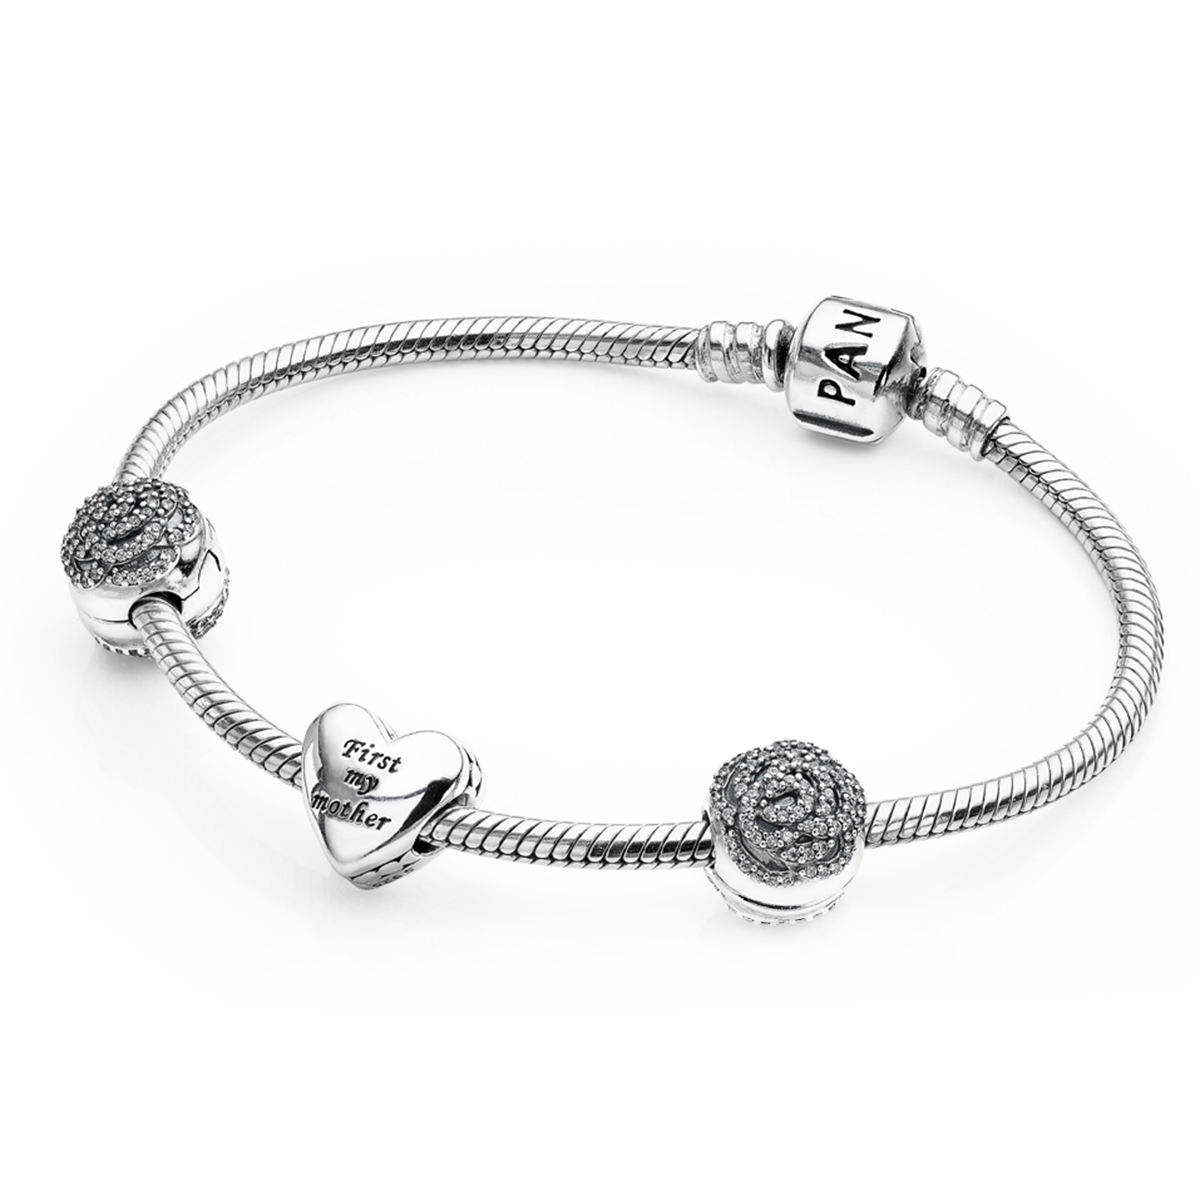 801-667-PANDORA Bouquet of Love Bracelet Gift Set LIMITED QUANTITIES!